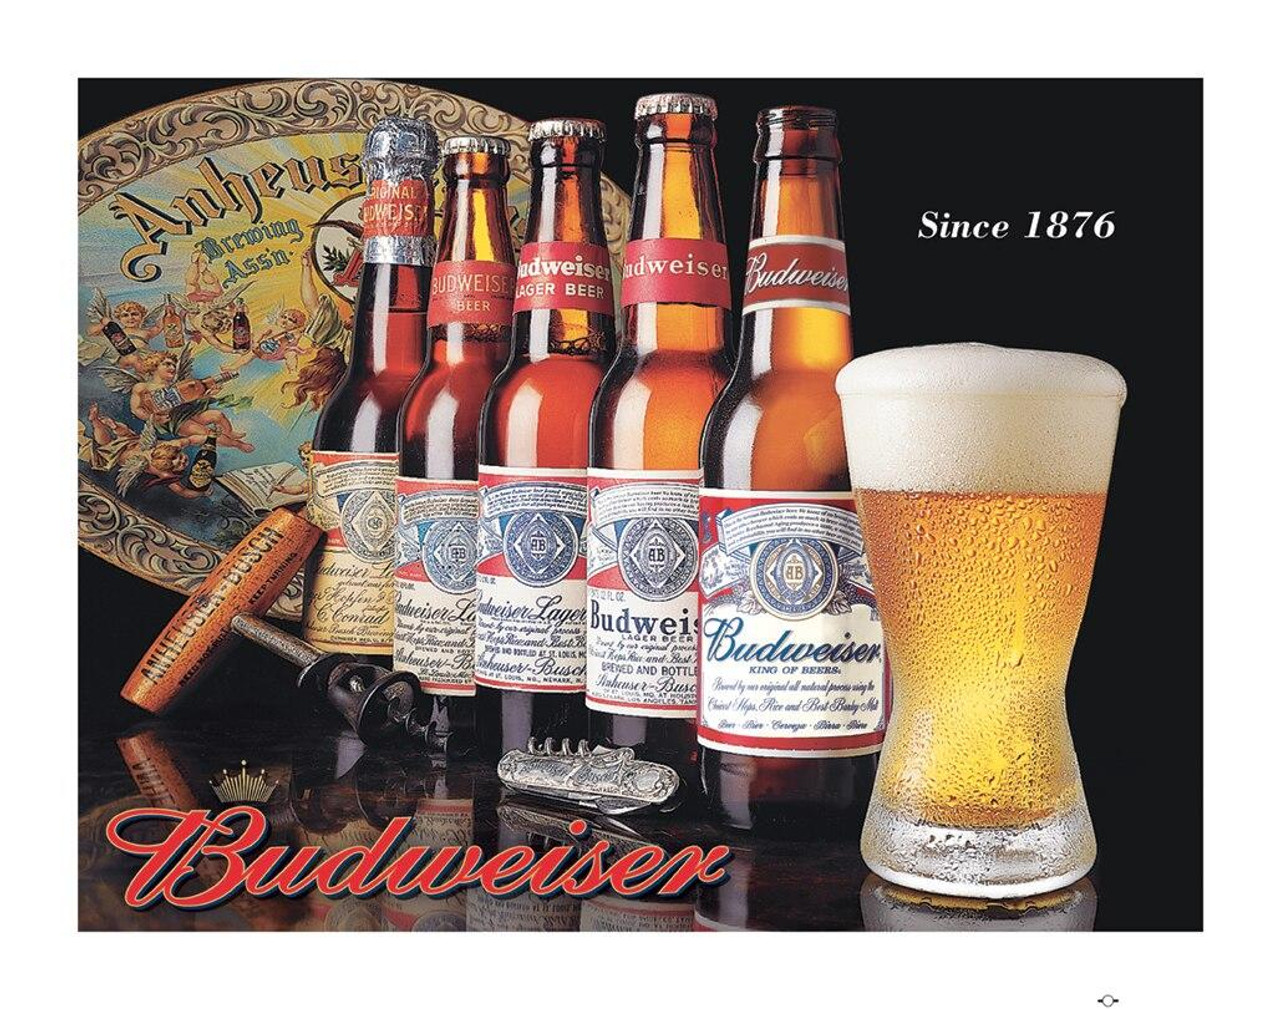 Anheuser-Busch BUD - History of Bud